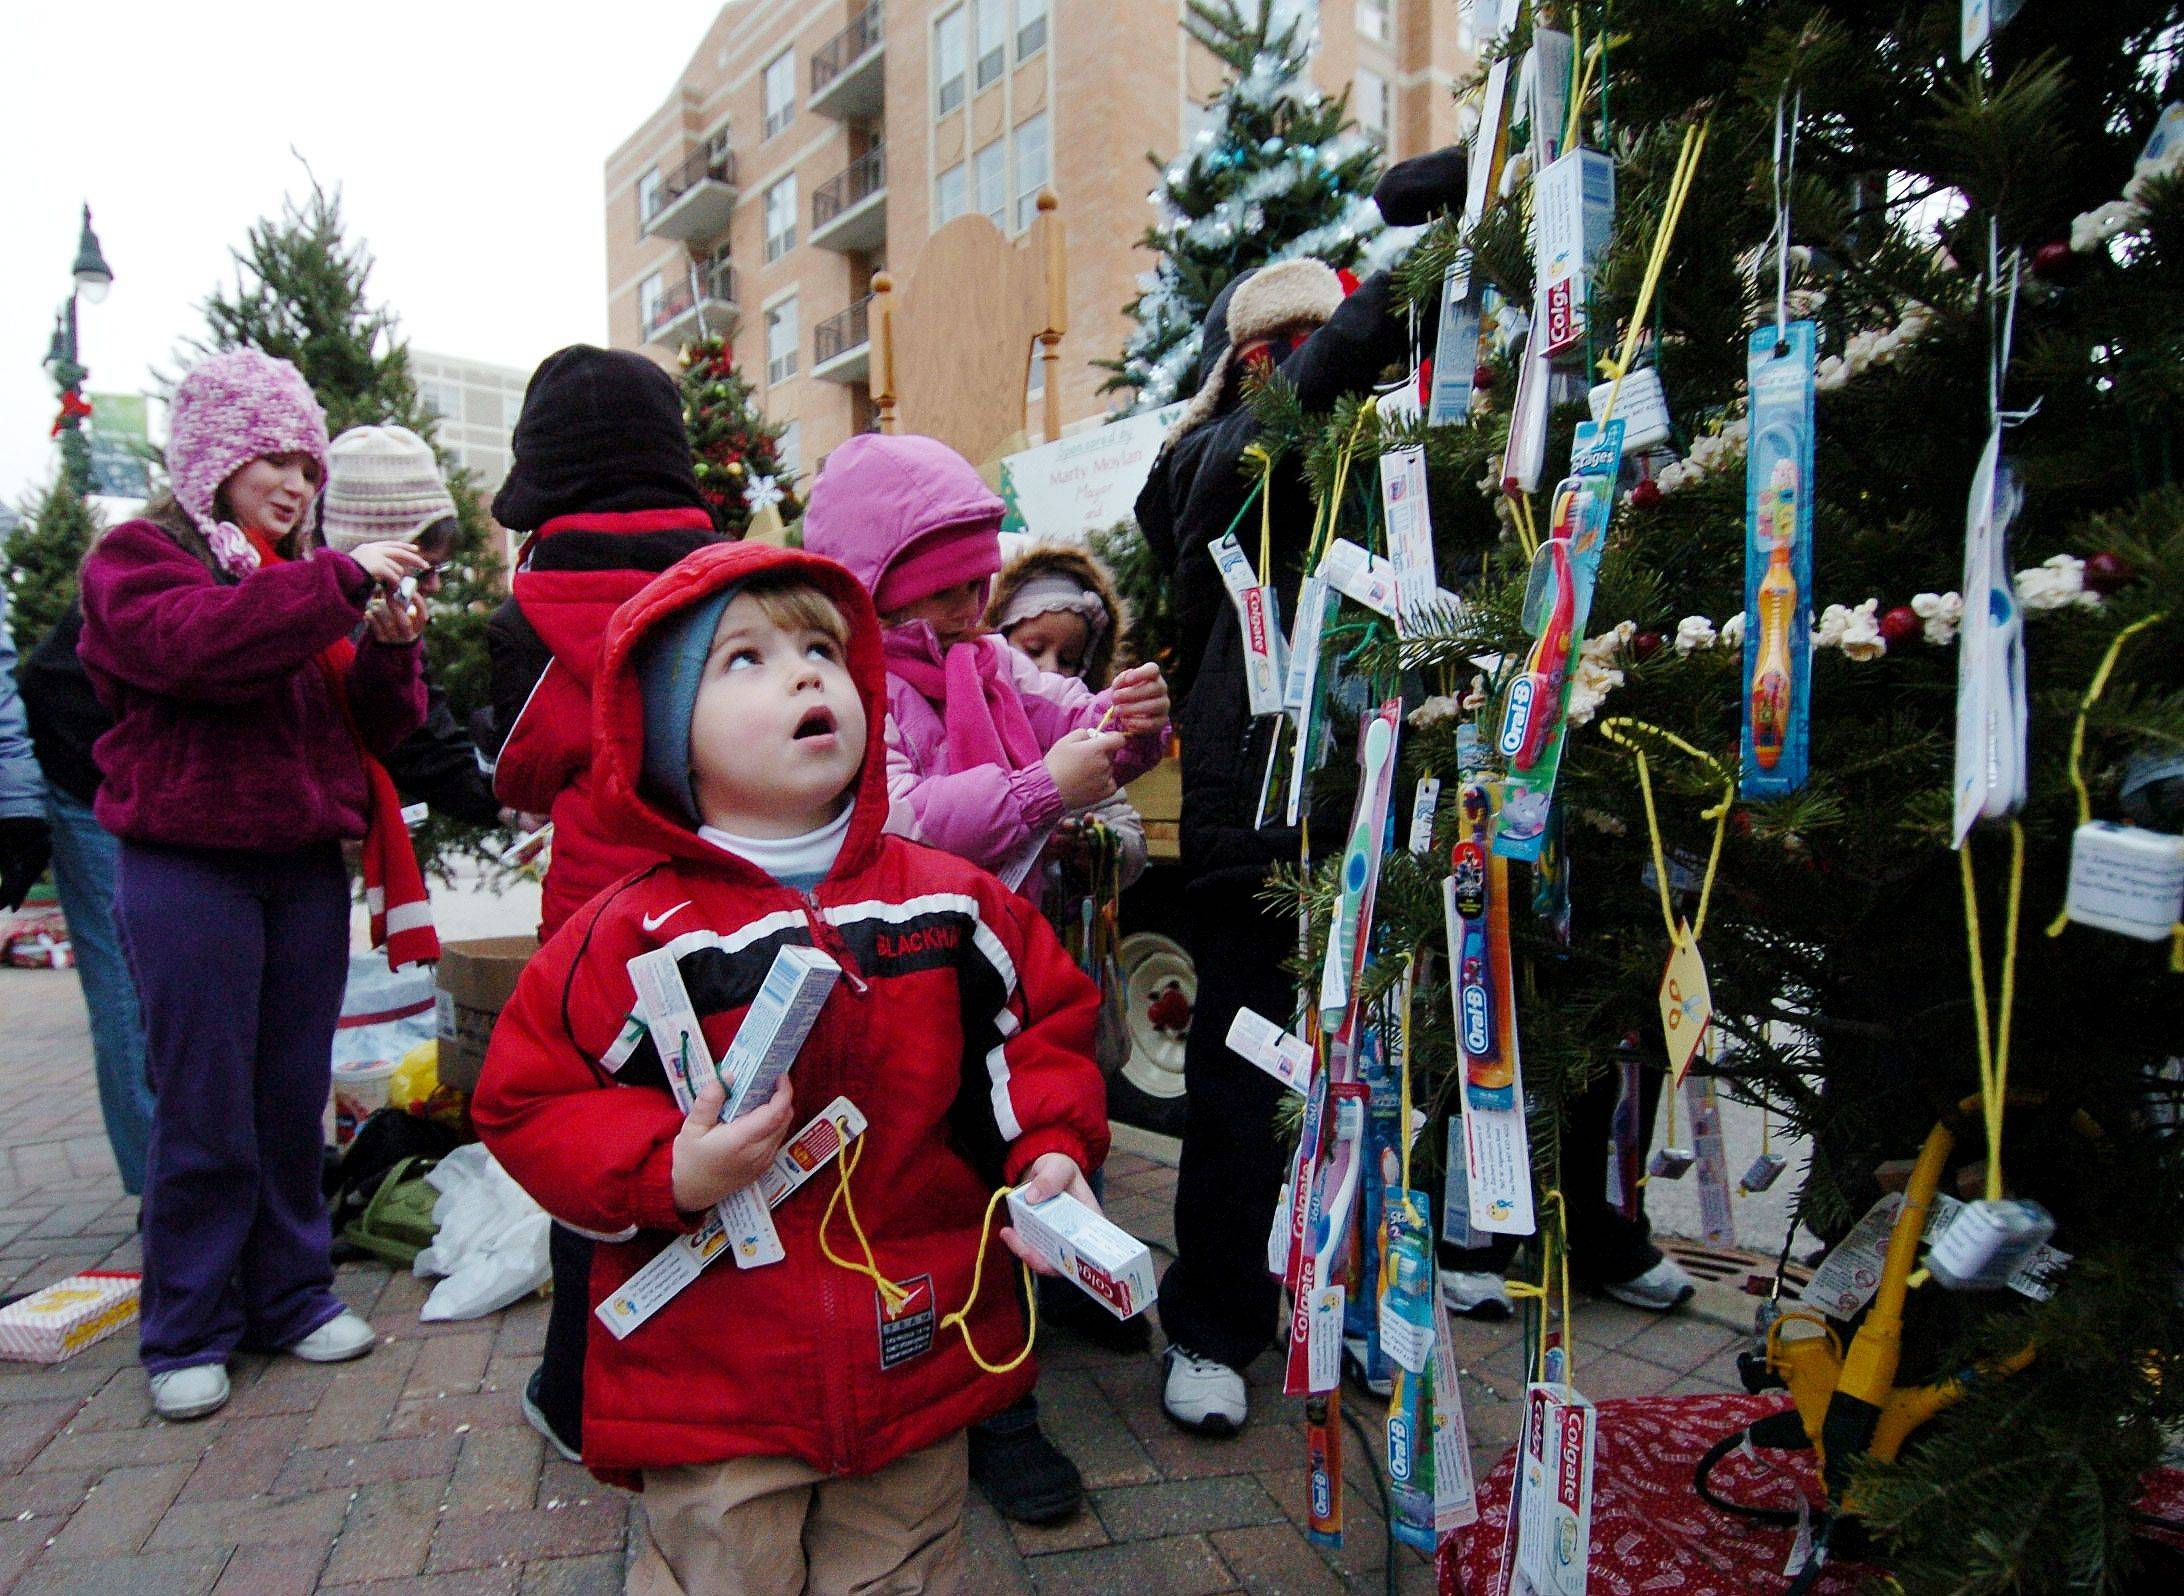 Three-year-old Sean Halpin seems a bit intimidated by the large Christmas tree he's helping to decorate for St. Zachary's parish during the Des Plaines Christmas tree lighting street fest at Metropolitan Square.